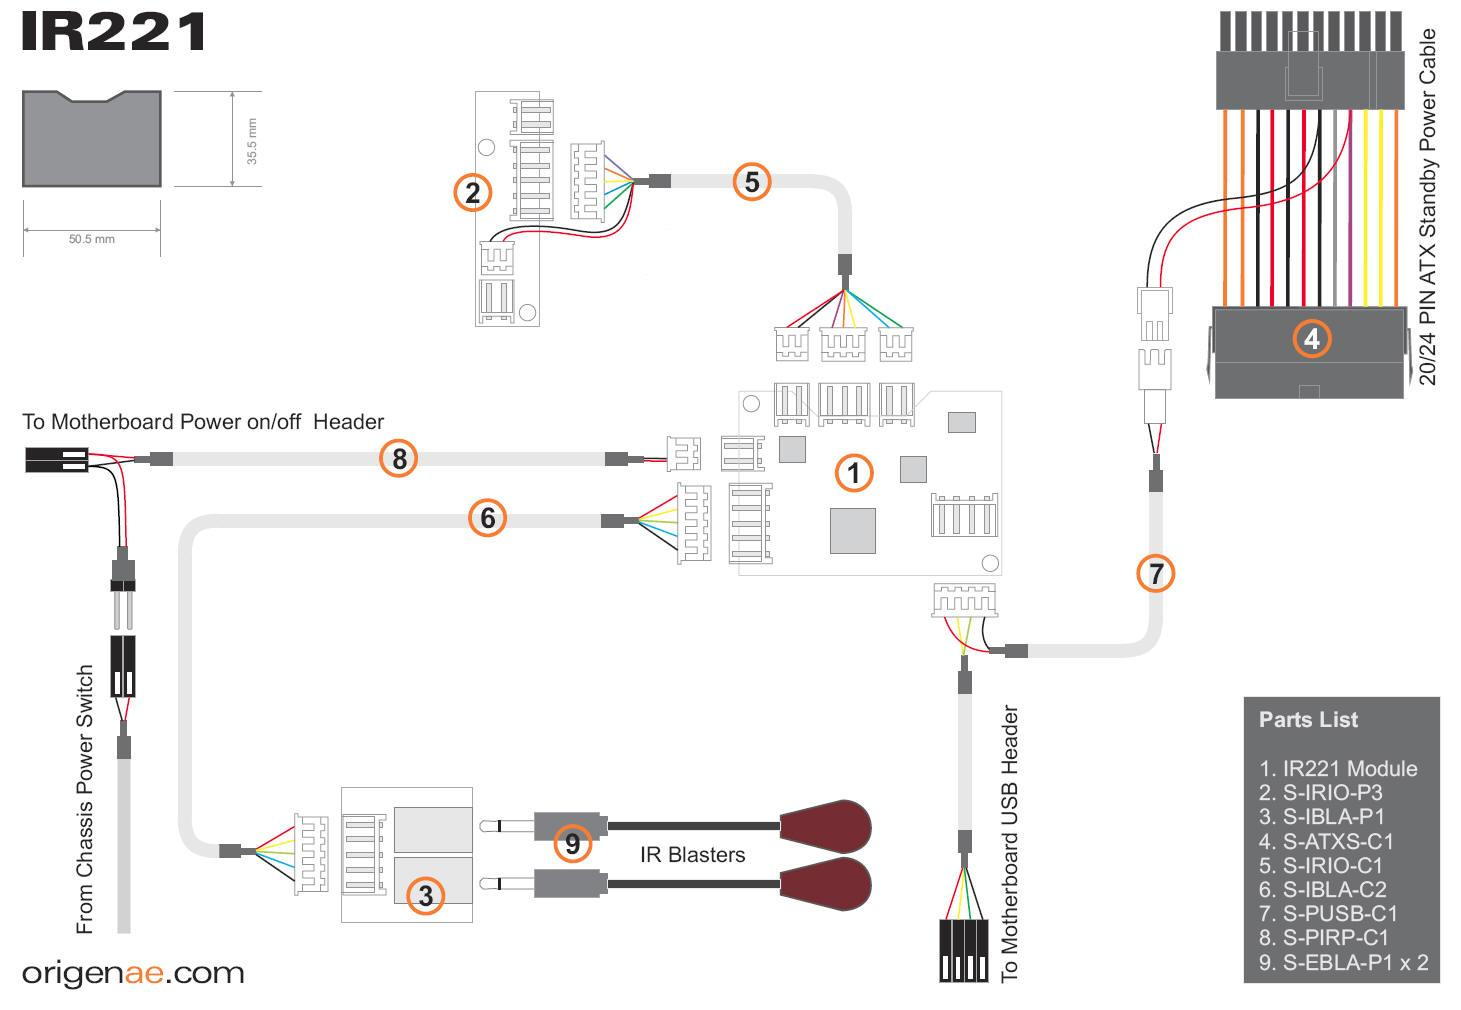 assembling wiring diagram sata